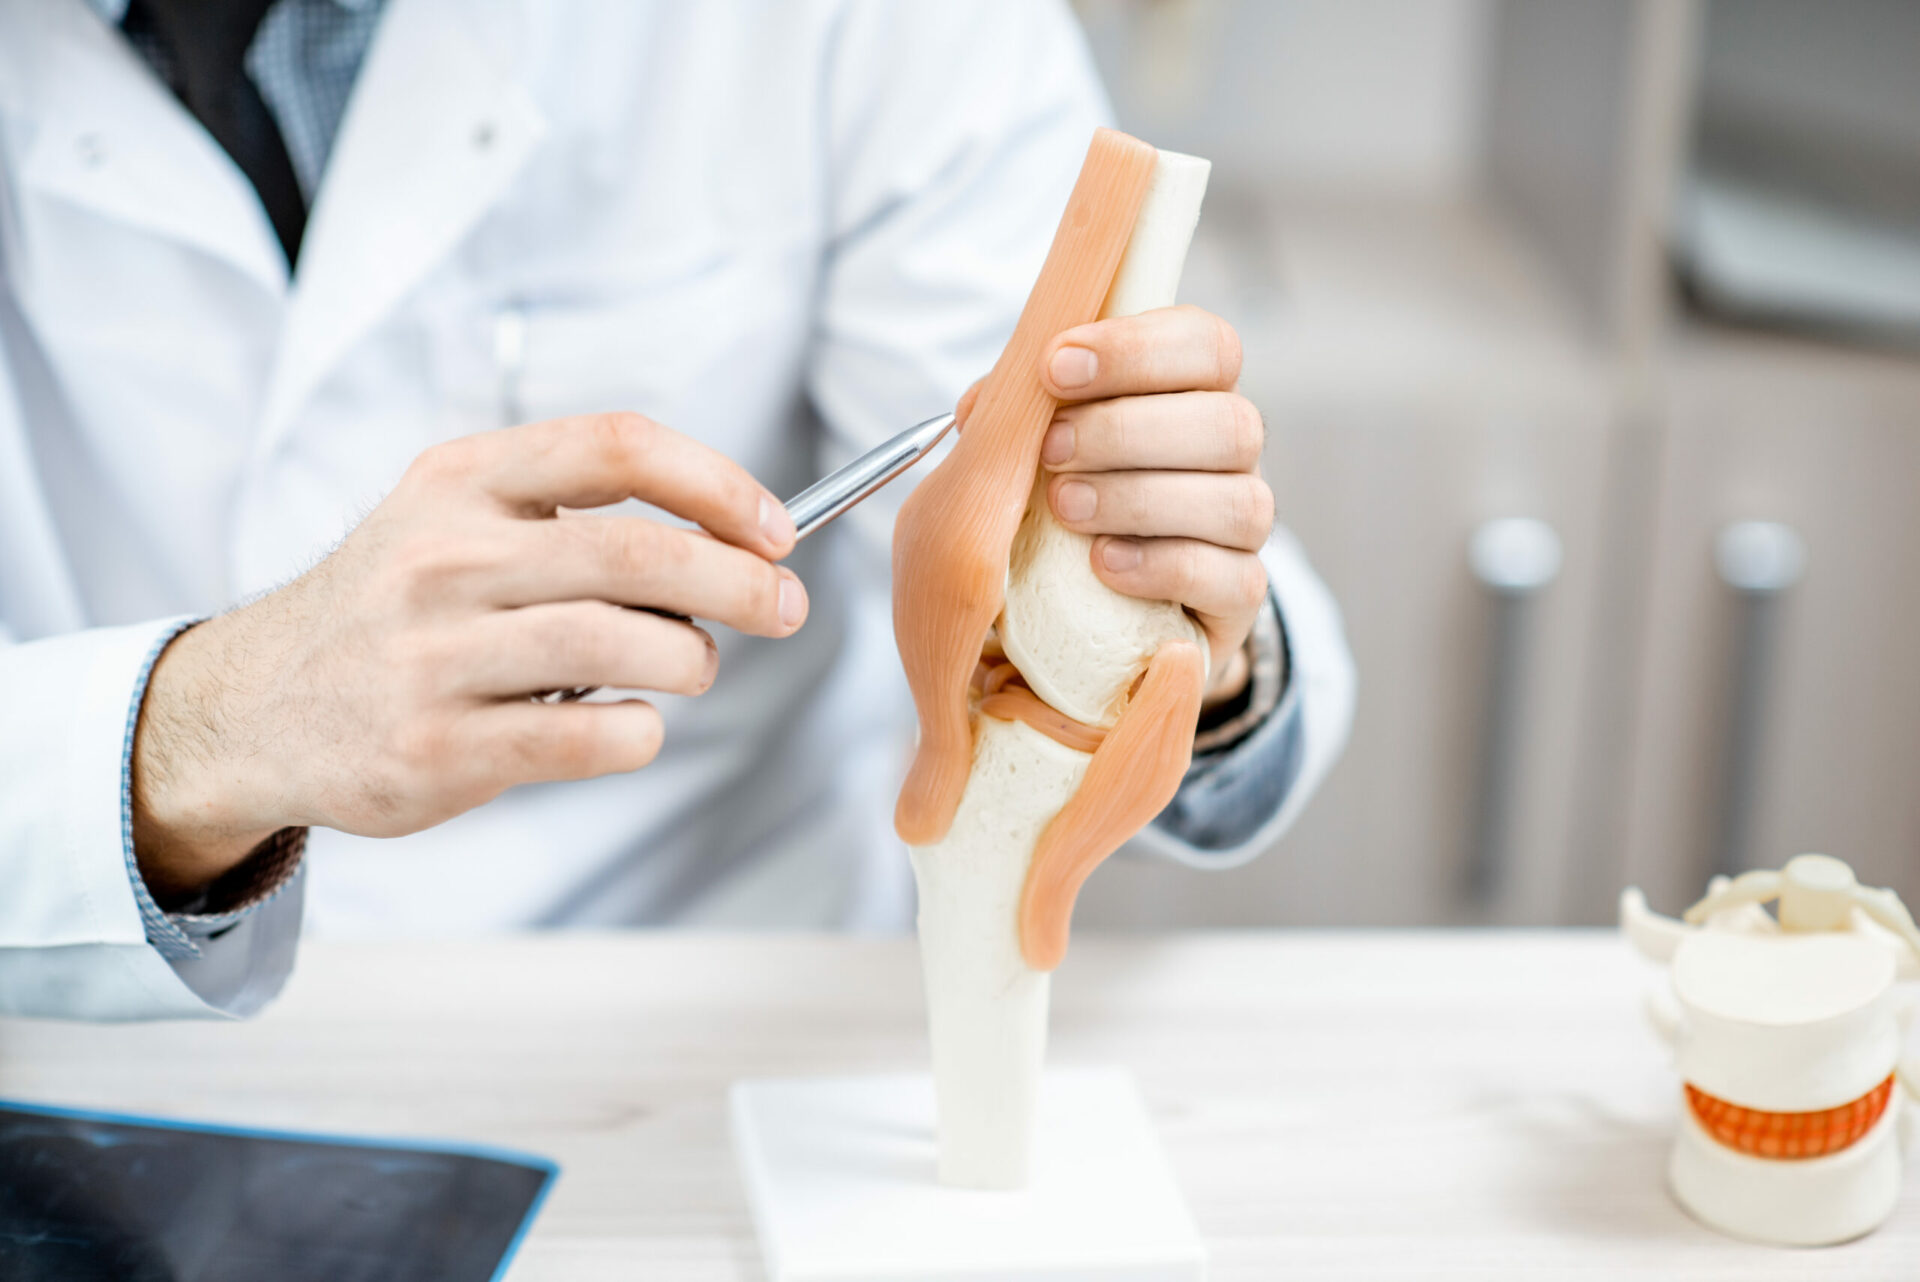 Close-up of the therapist showing knee joint model during the medical consultation